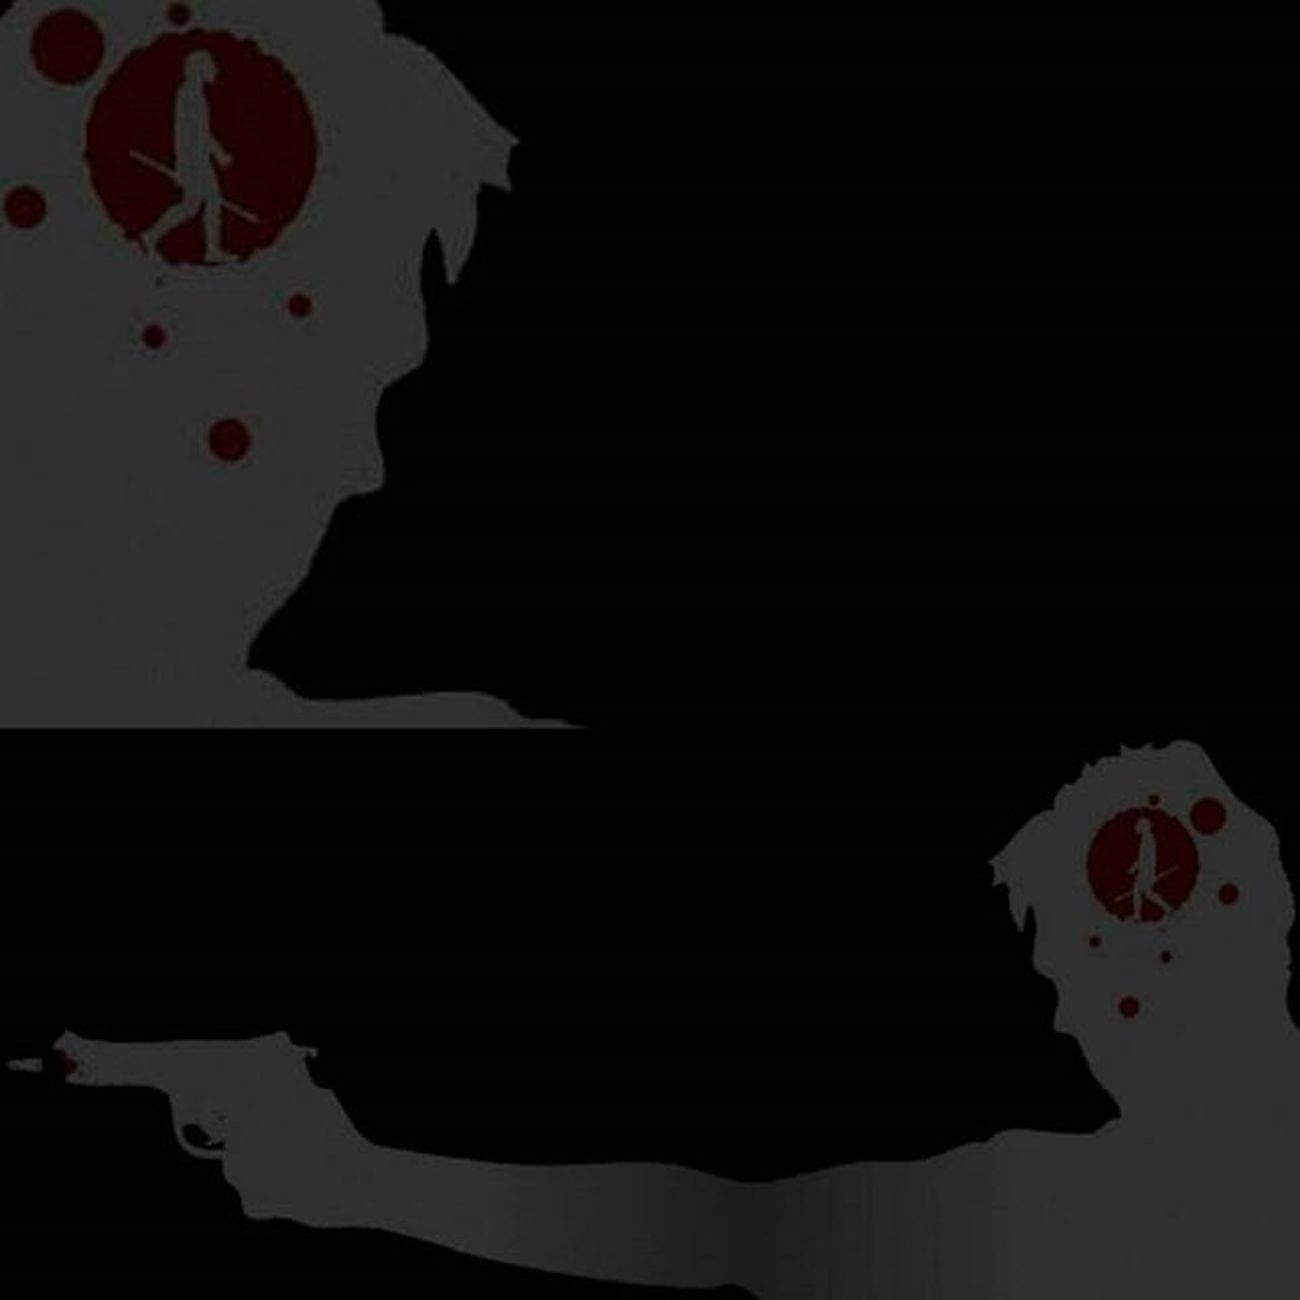 Miras! Gfx Graphics Blood Death Guns